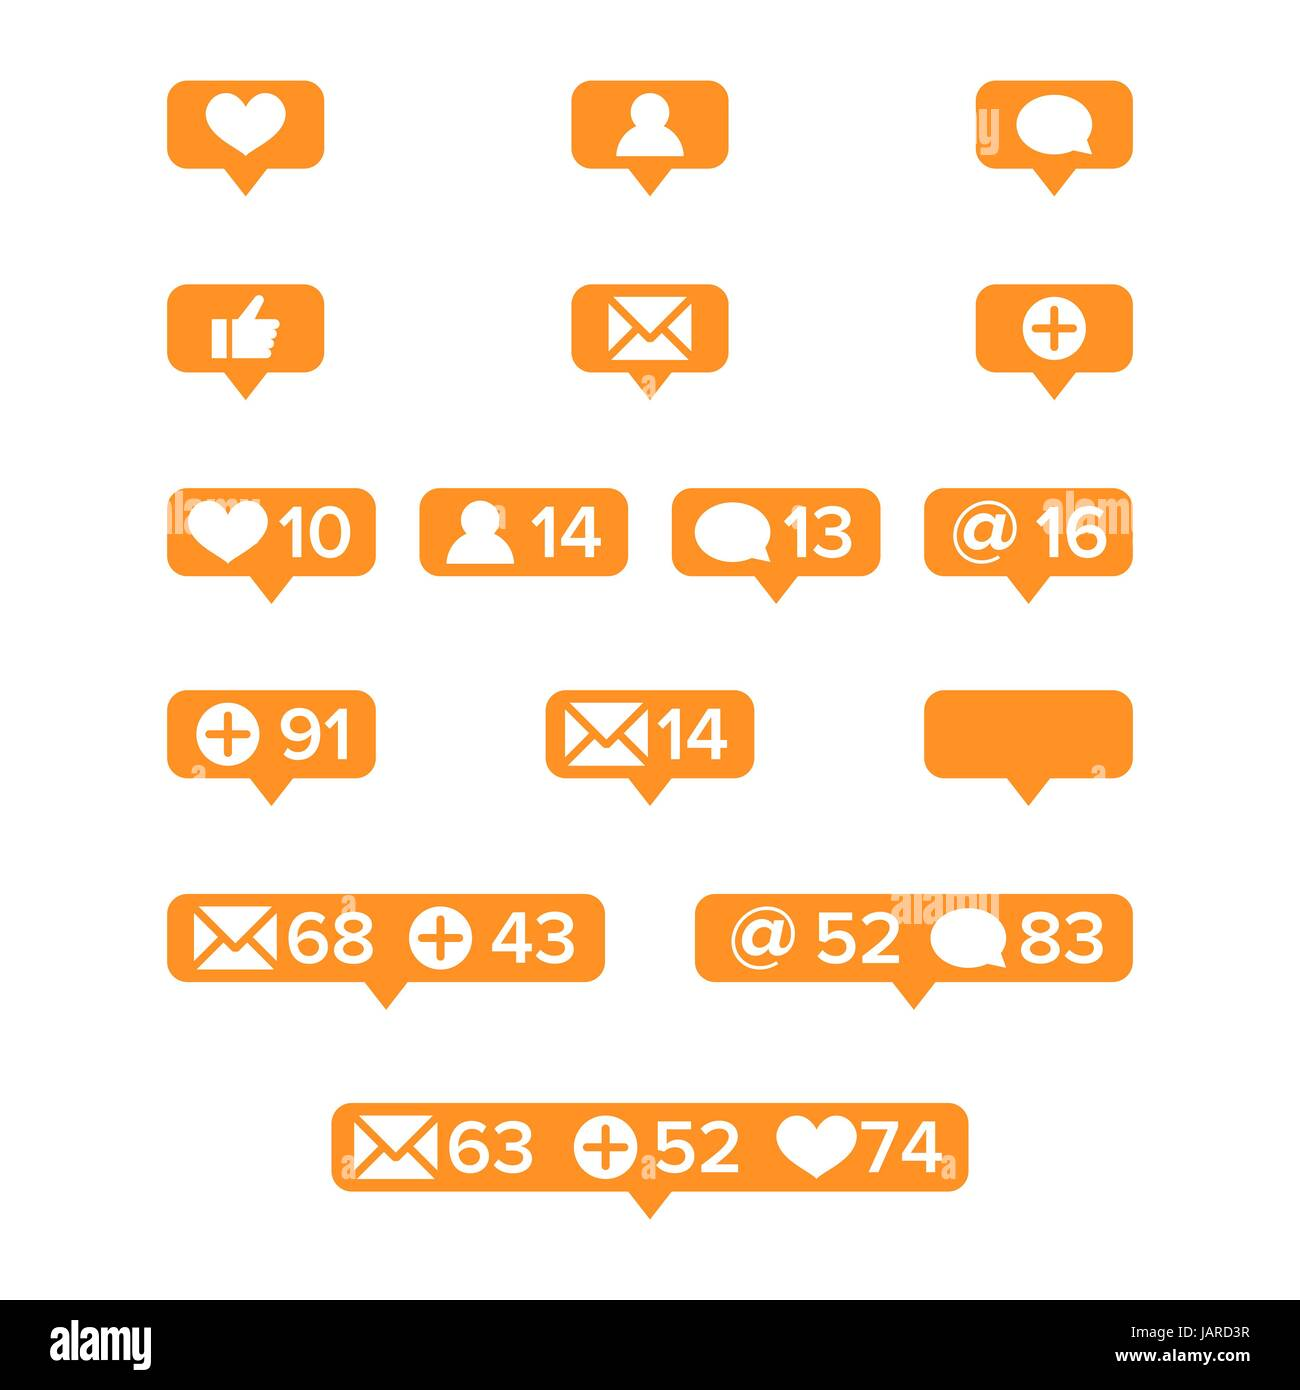 Notifications Icons Template Vector. Social network app symbols of ...